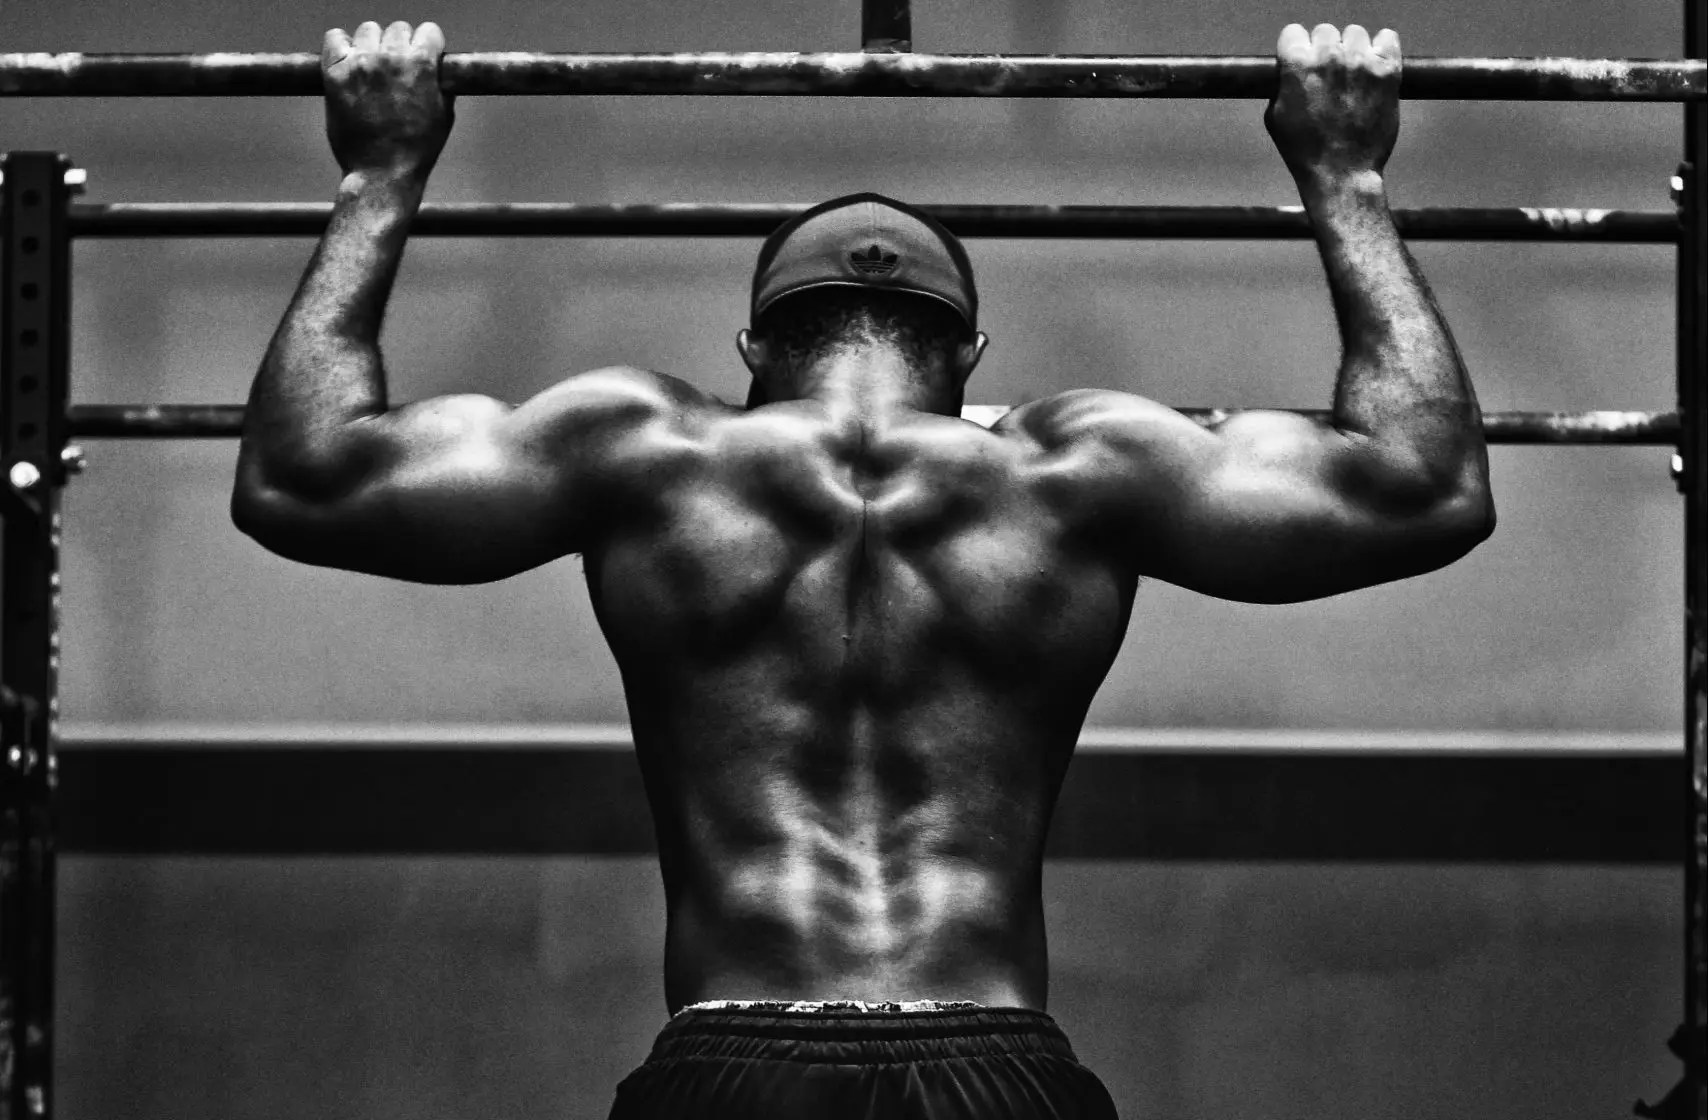 Man hanging on the bar as fitness goals and busting bodybuilding